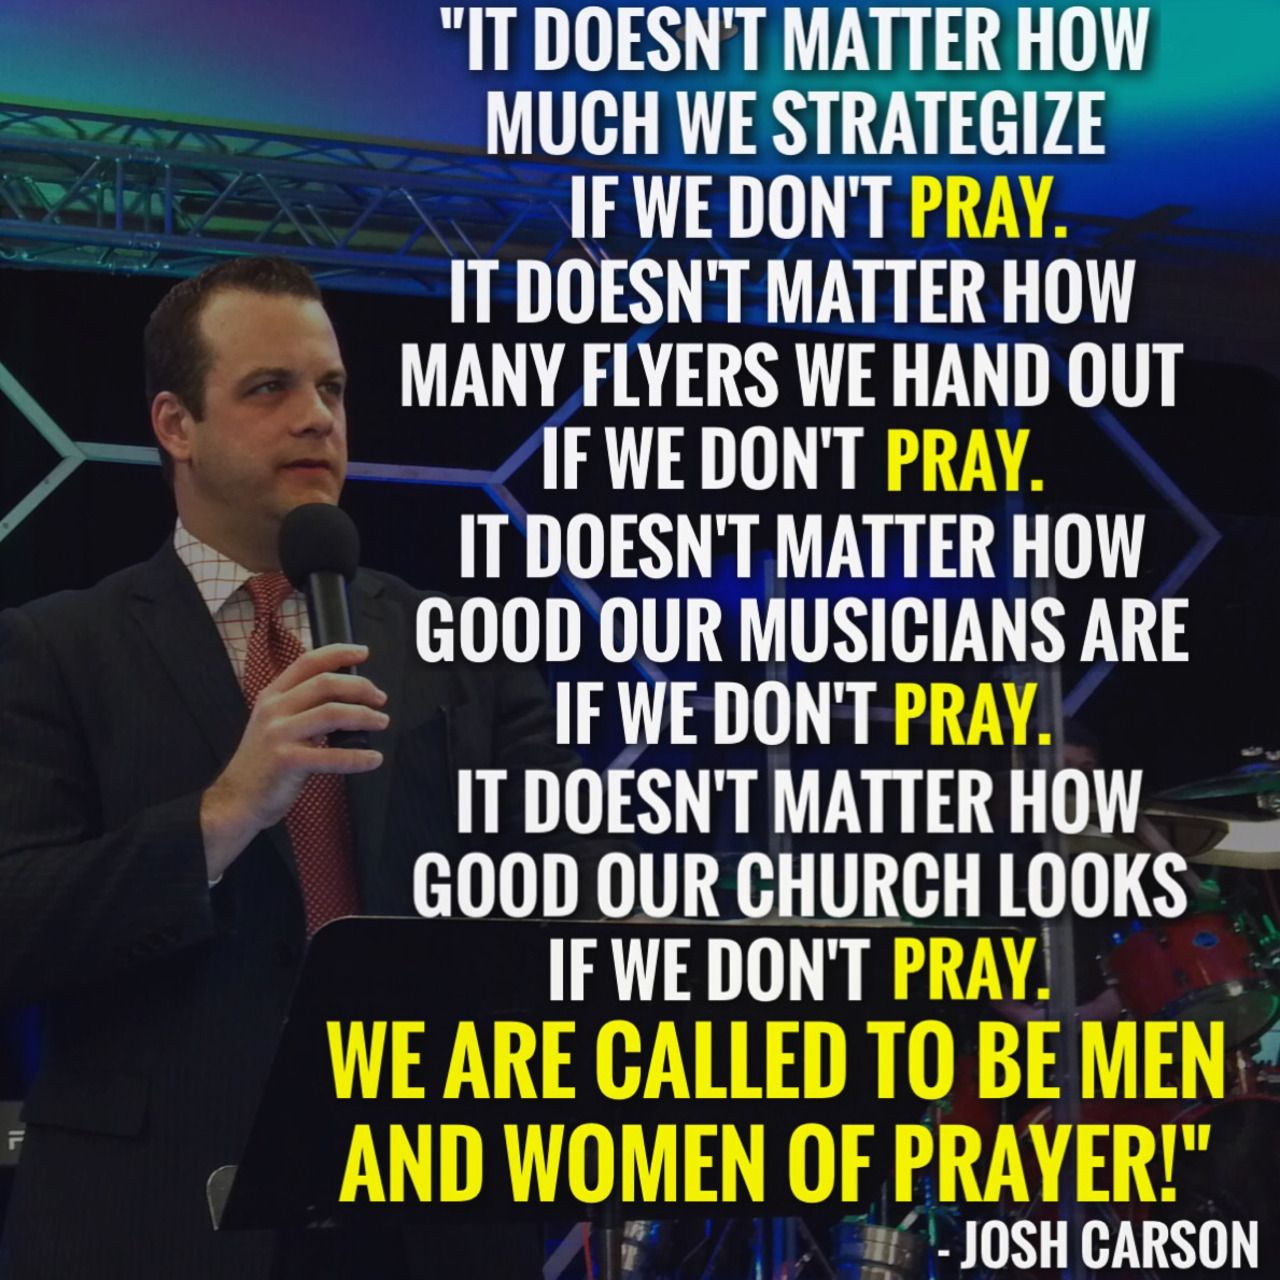 """We are called to be men and women of prayer!"""